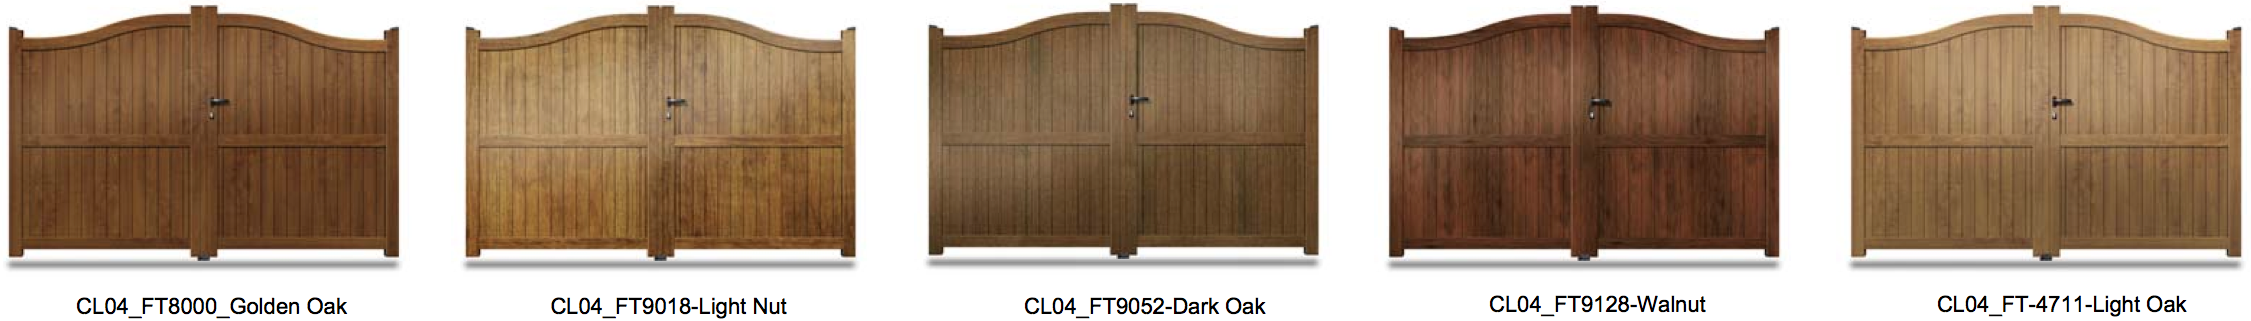 CL04 Wood Effect Aluminium Gate